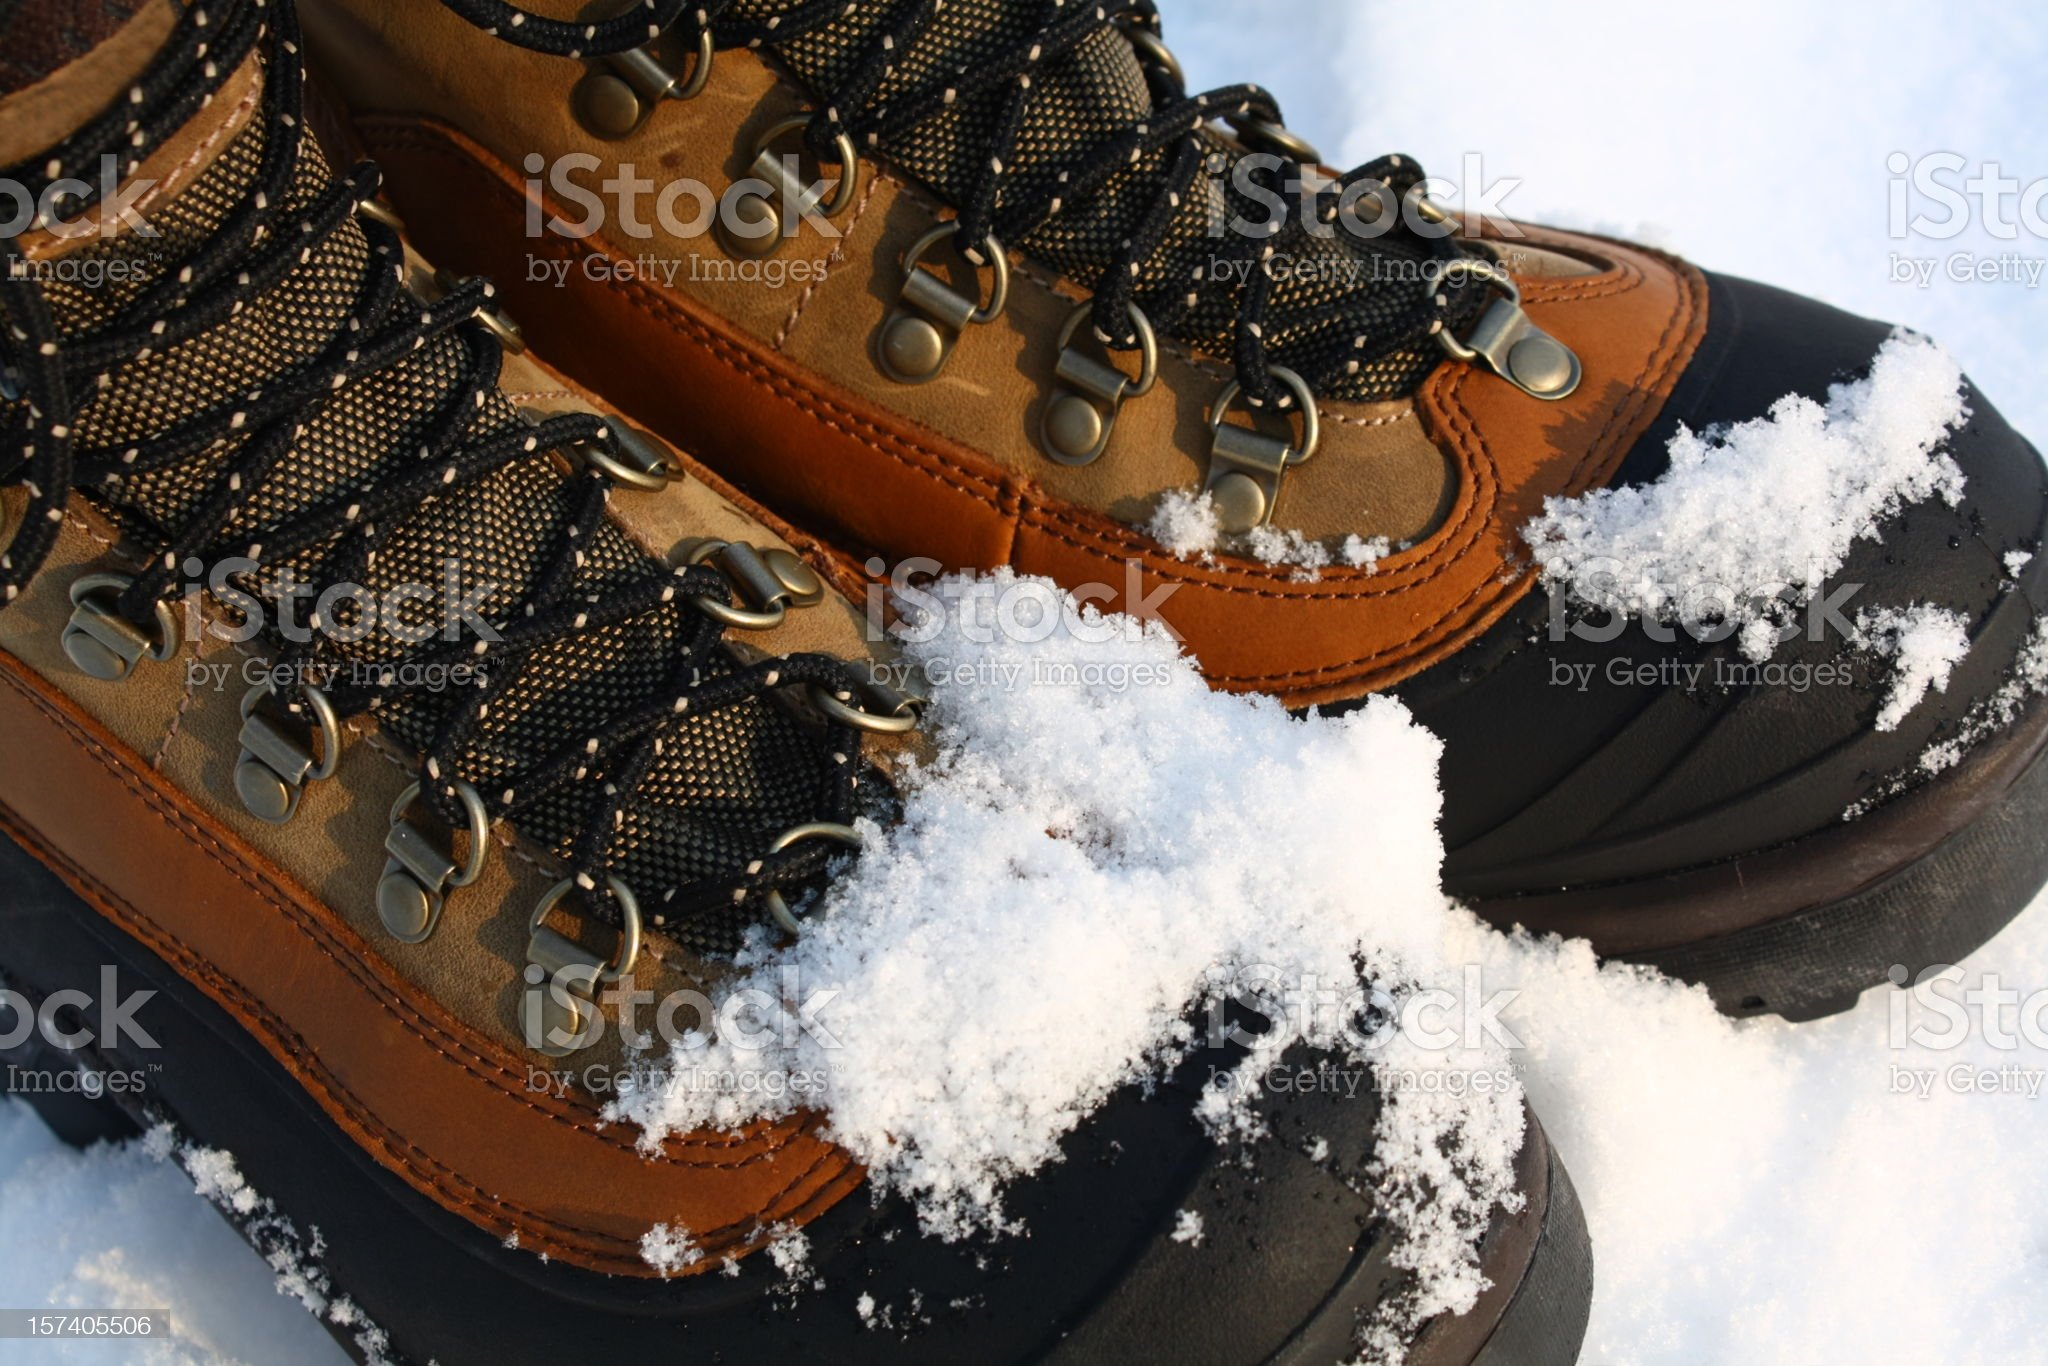 Snowy Winter Boots royalty-free stock photo